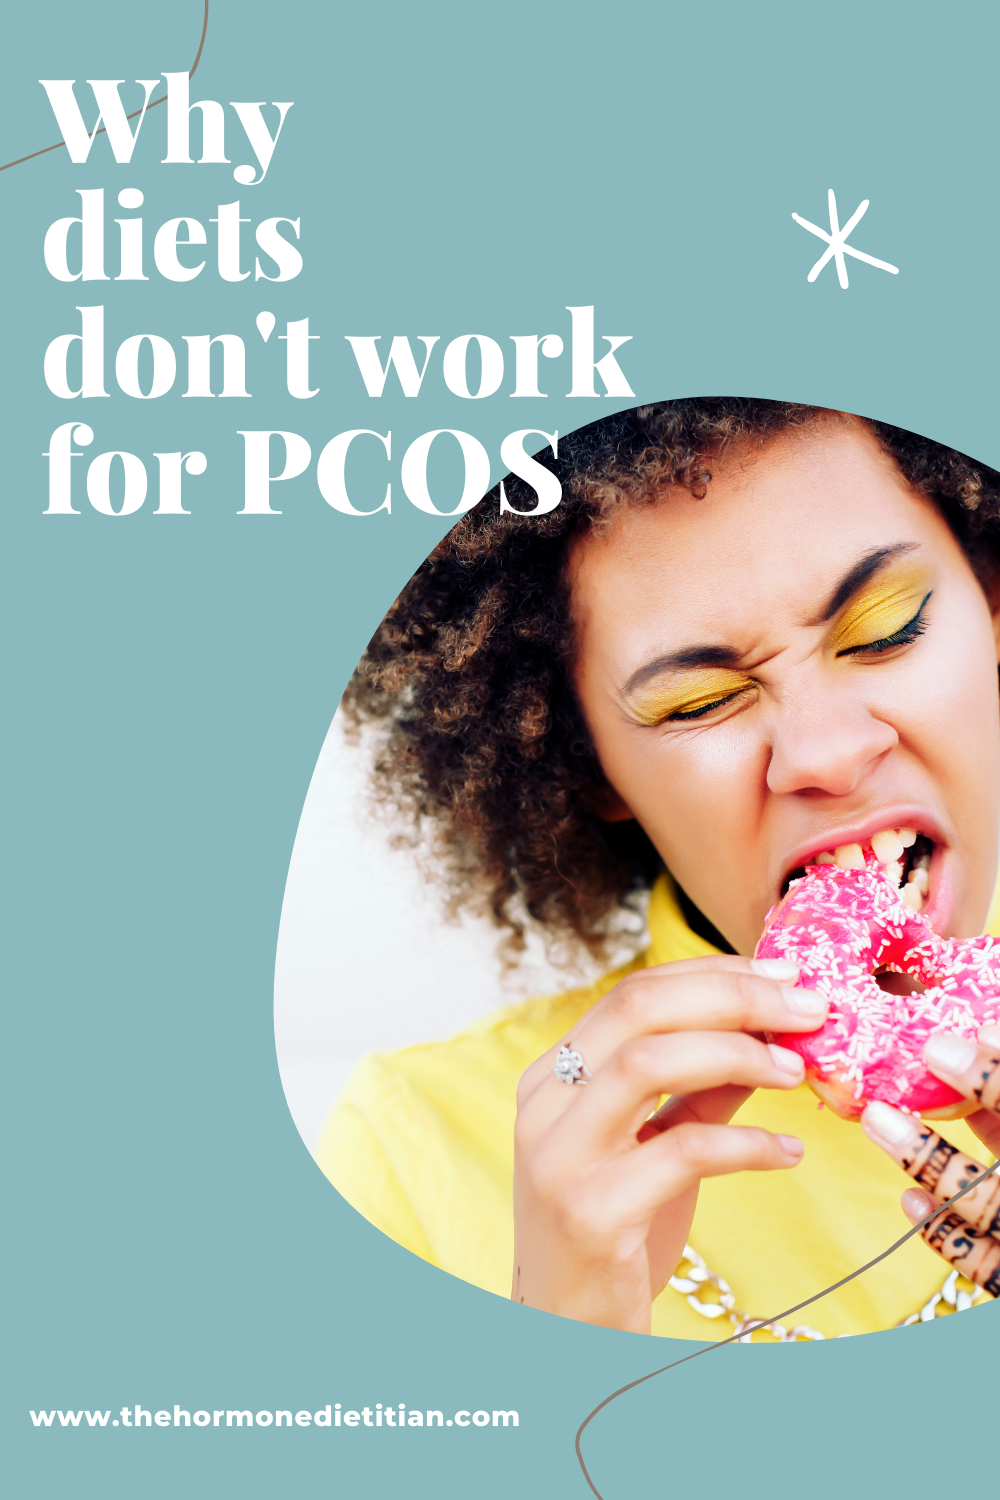 Why diets don't work for PCOS